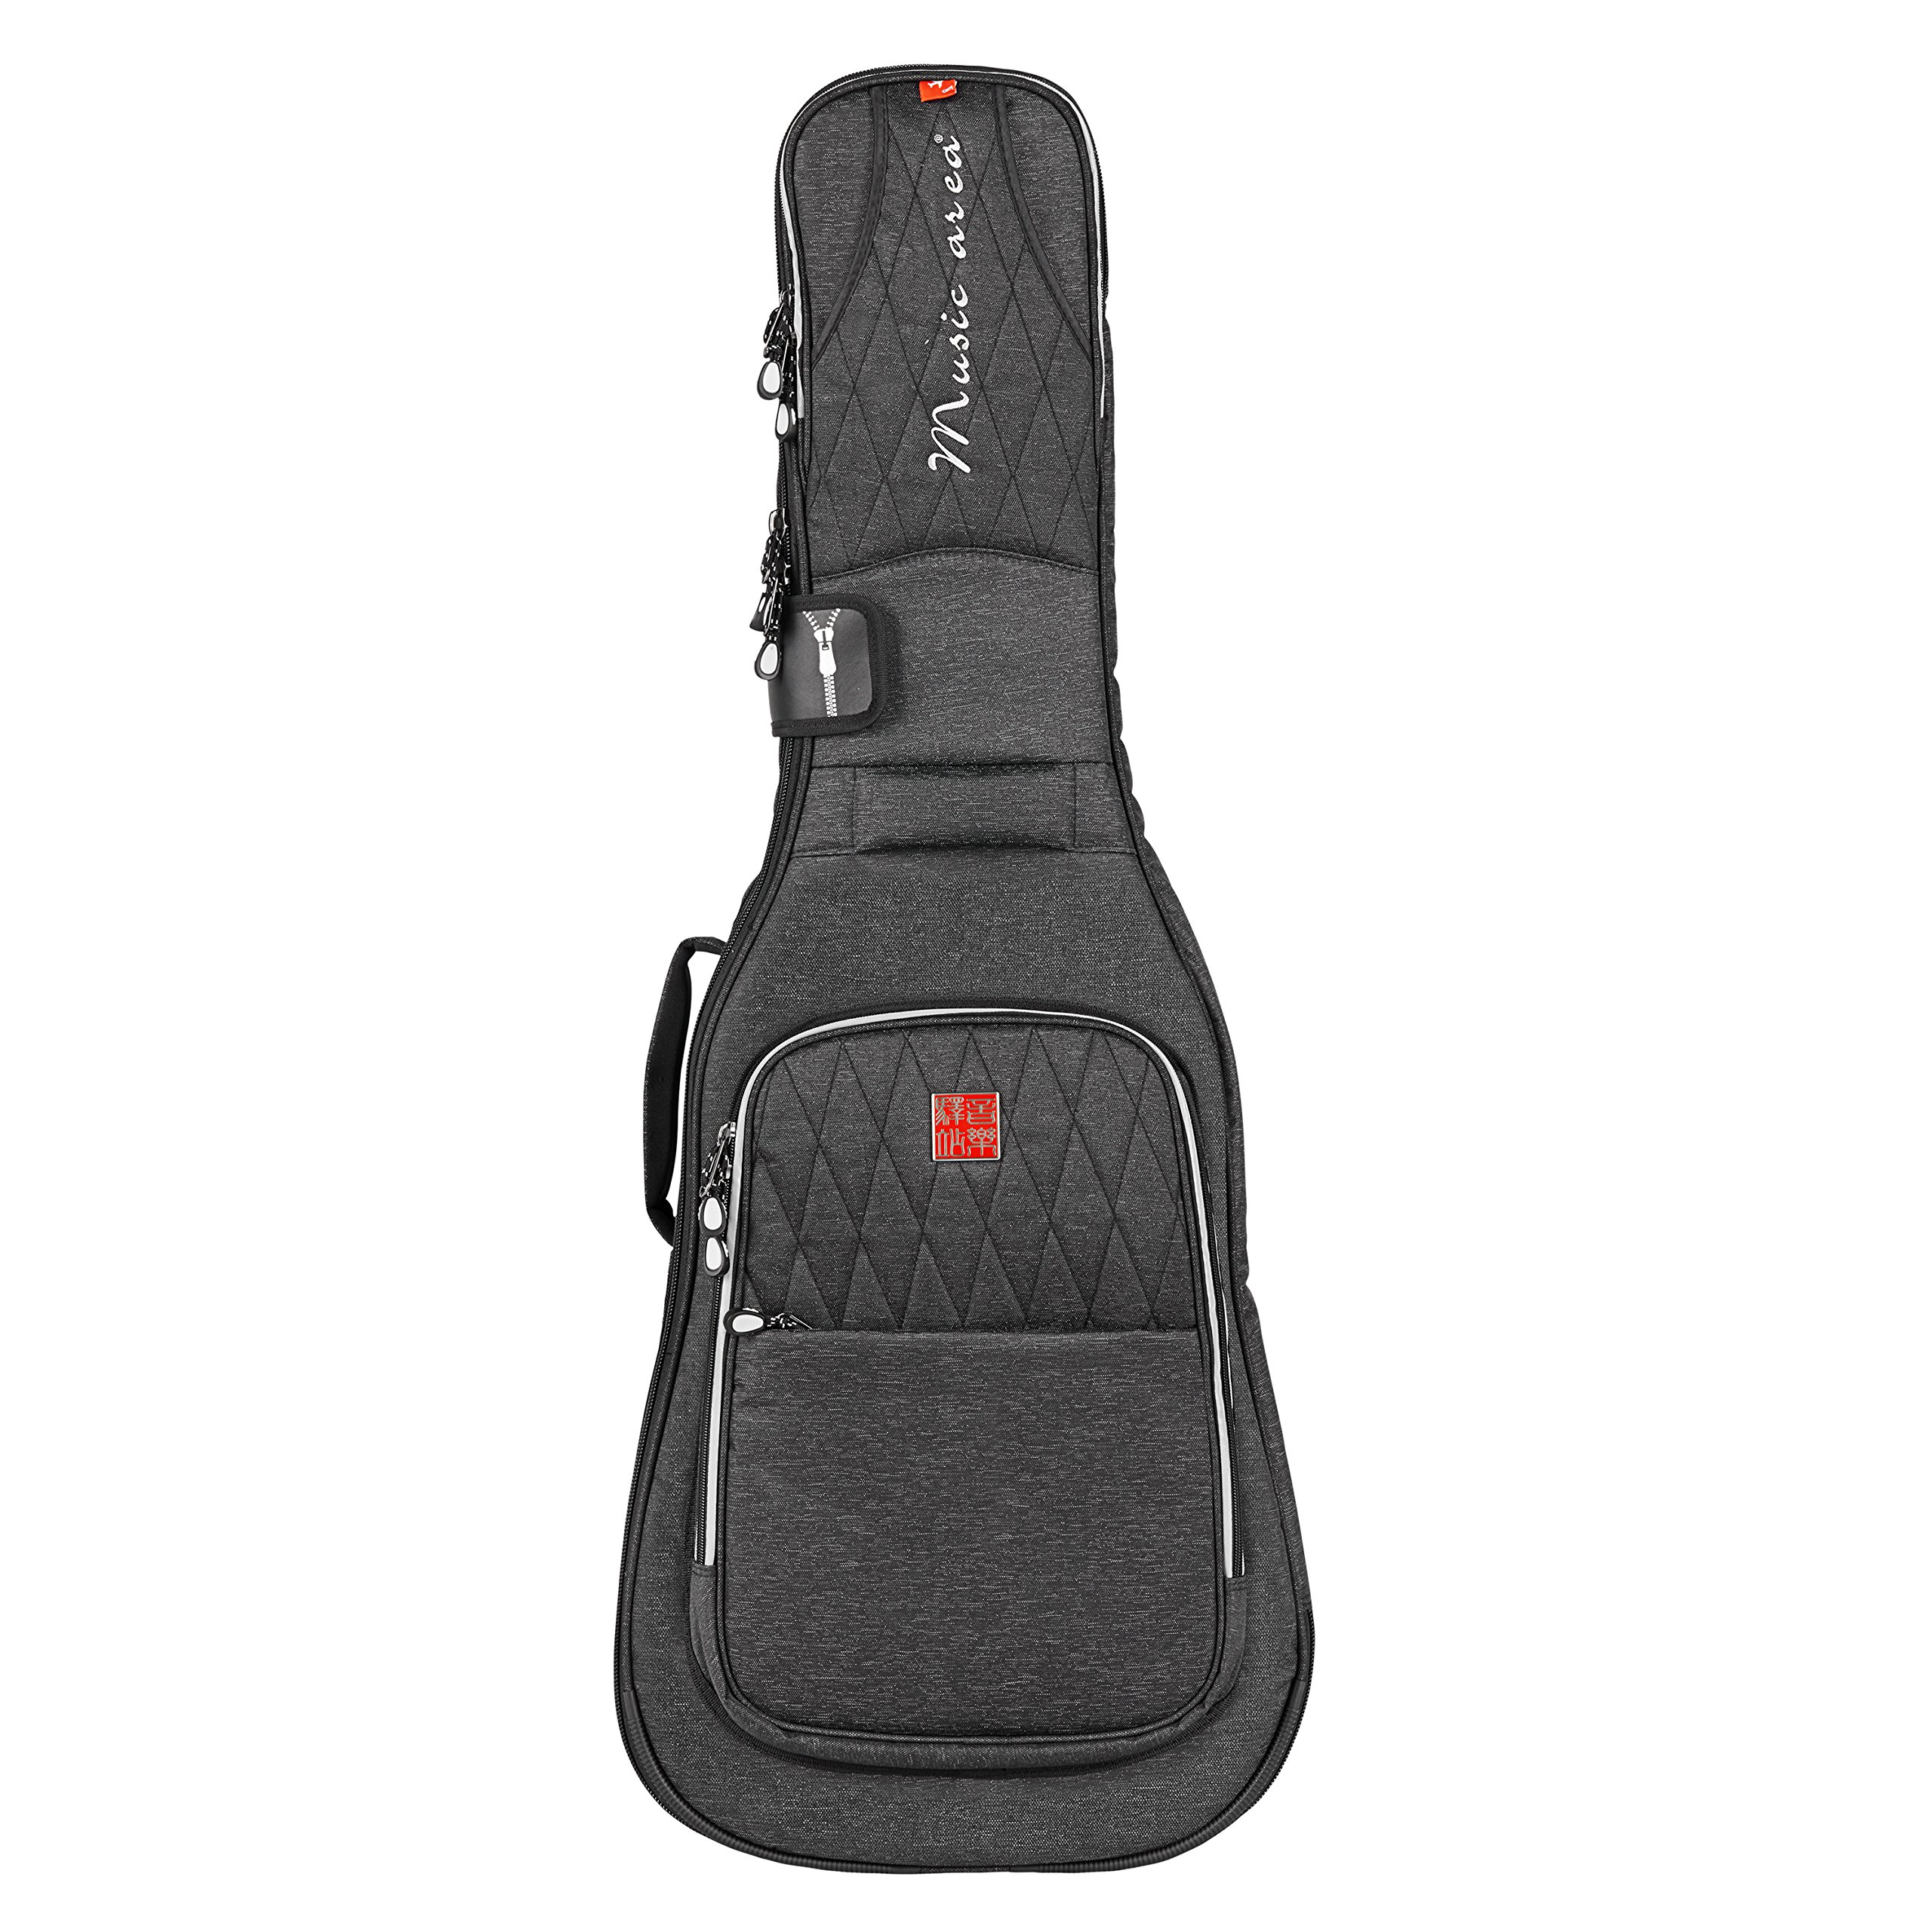 Music Area TANG30 Electric Guitar Gig Bag Waterproof 30mm cushion Protection Patented - Black